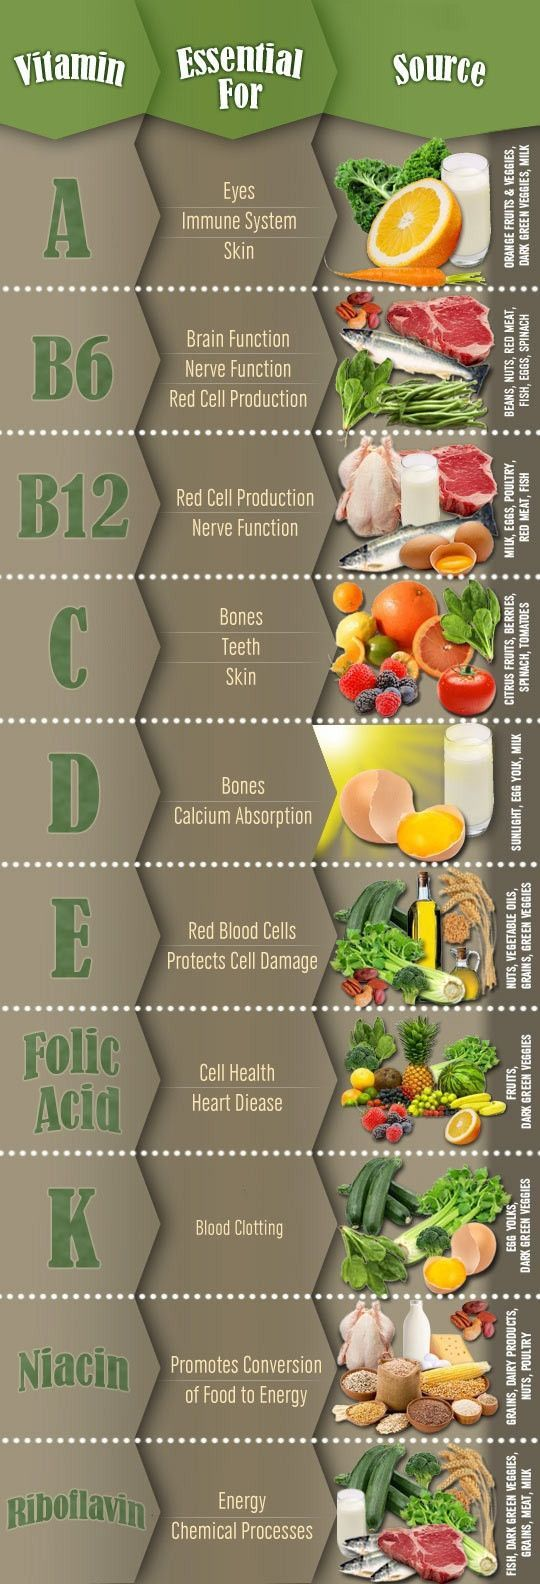 Vitamins, their benefits and where to find them. HEALTH